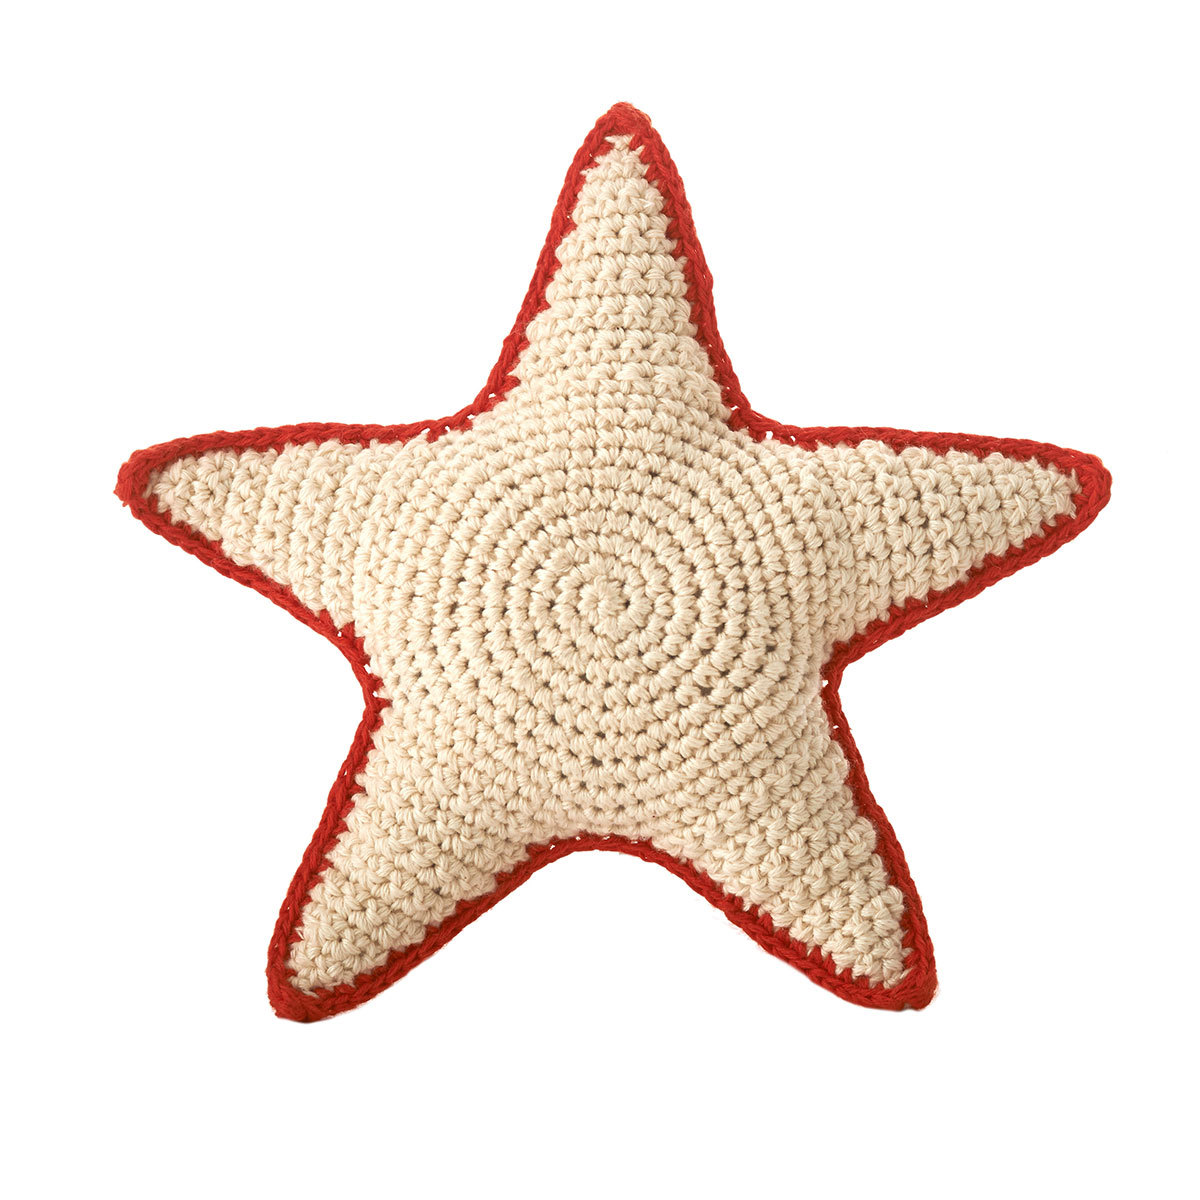 Hochet Hochet Sea Star en Crochet - Rouge Hochet Sea Star en Crochet - Rouge